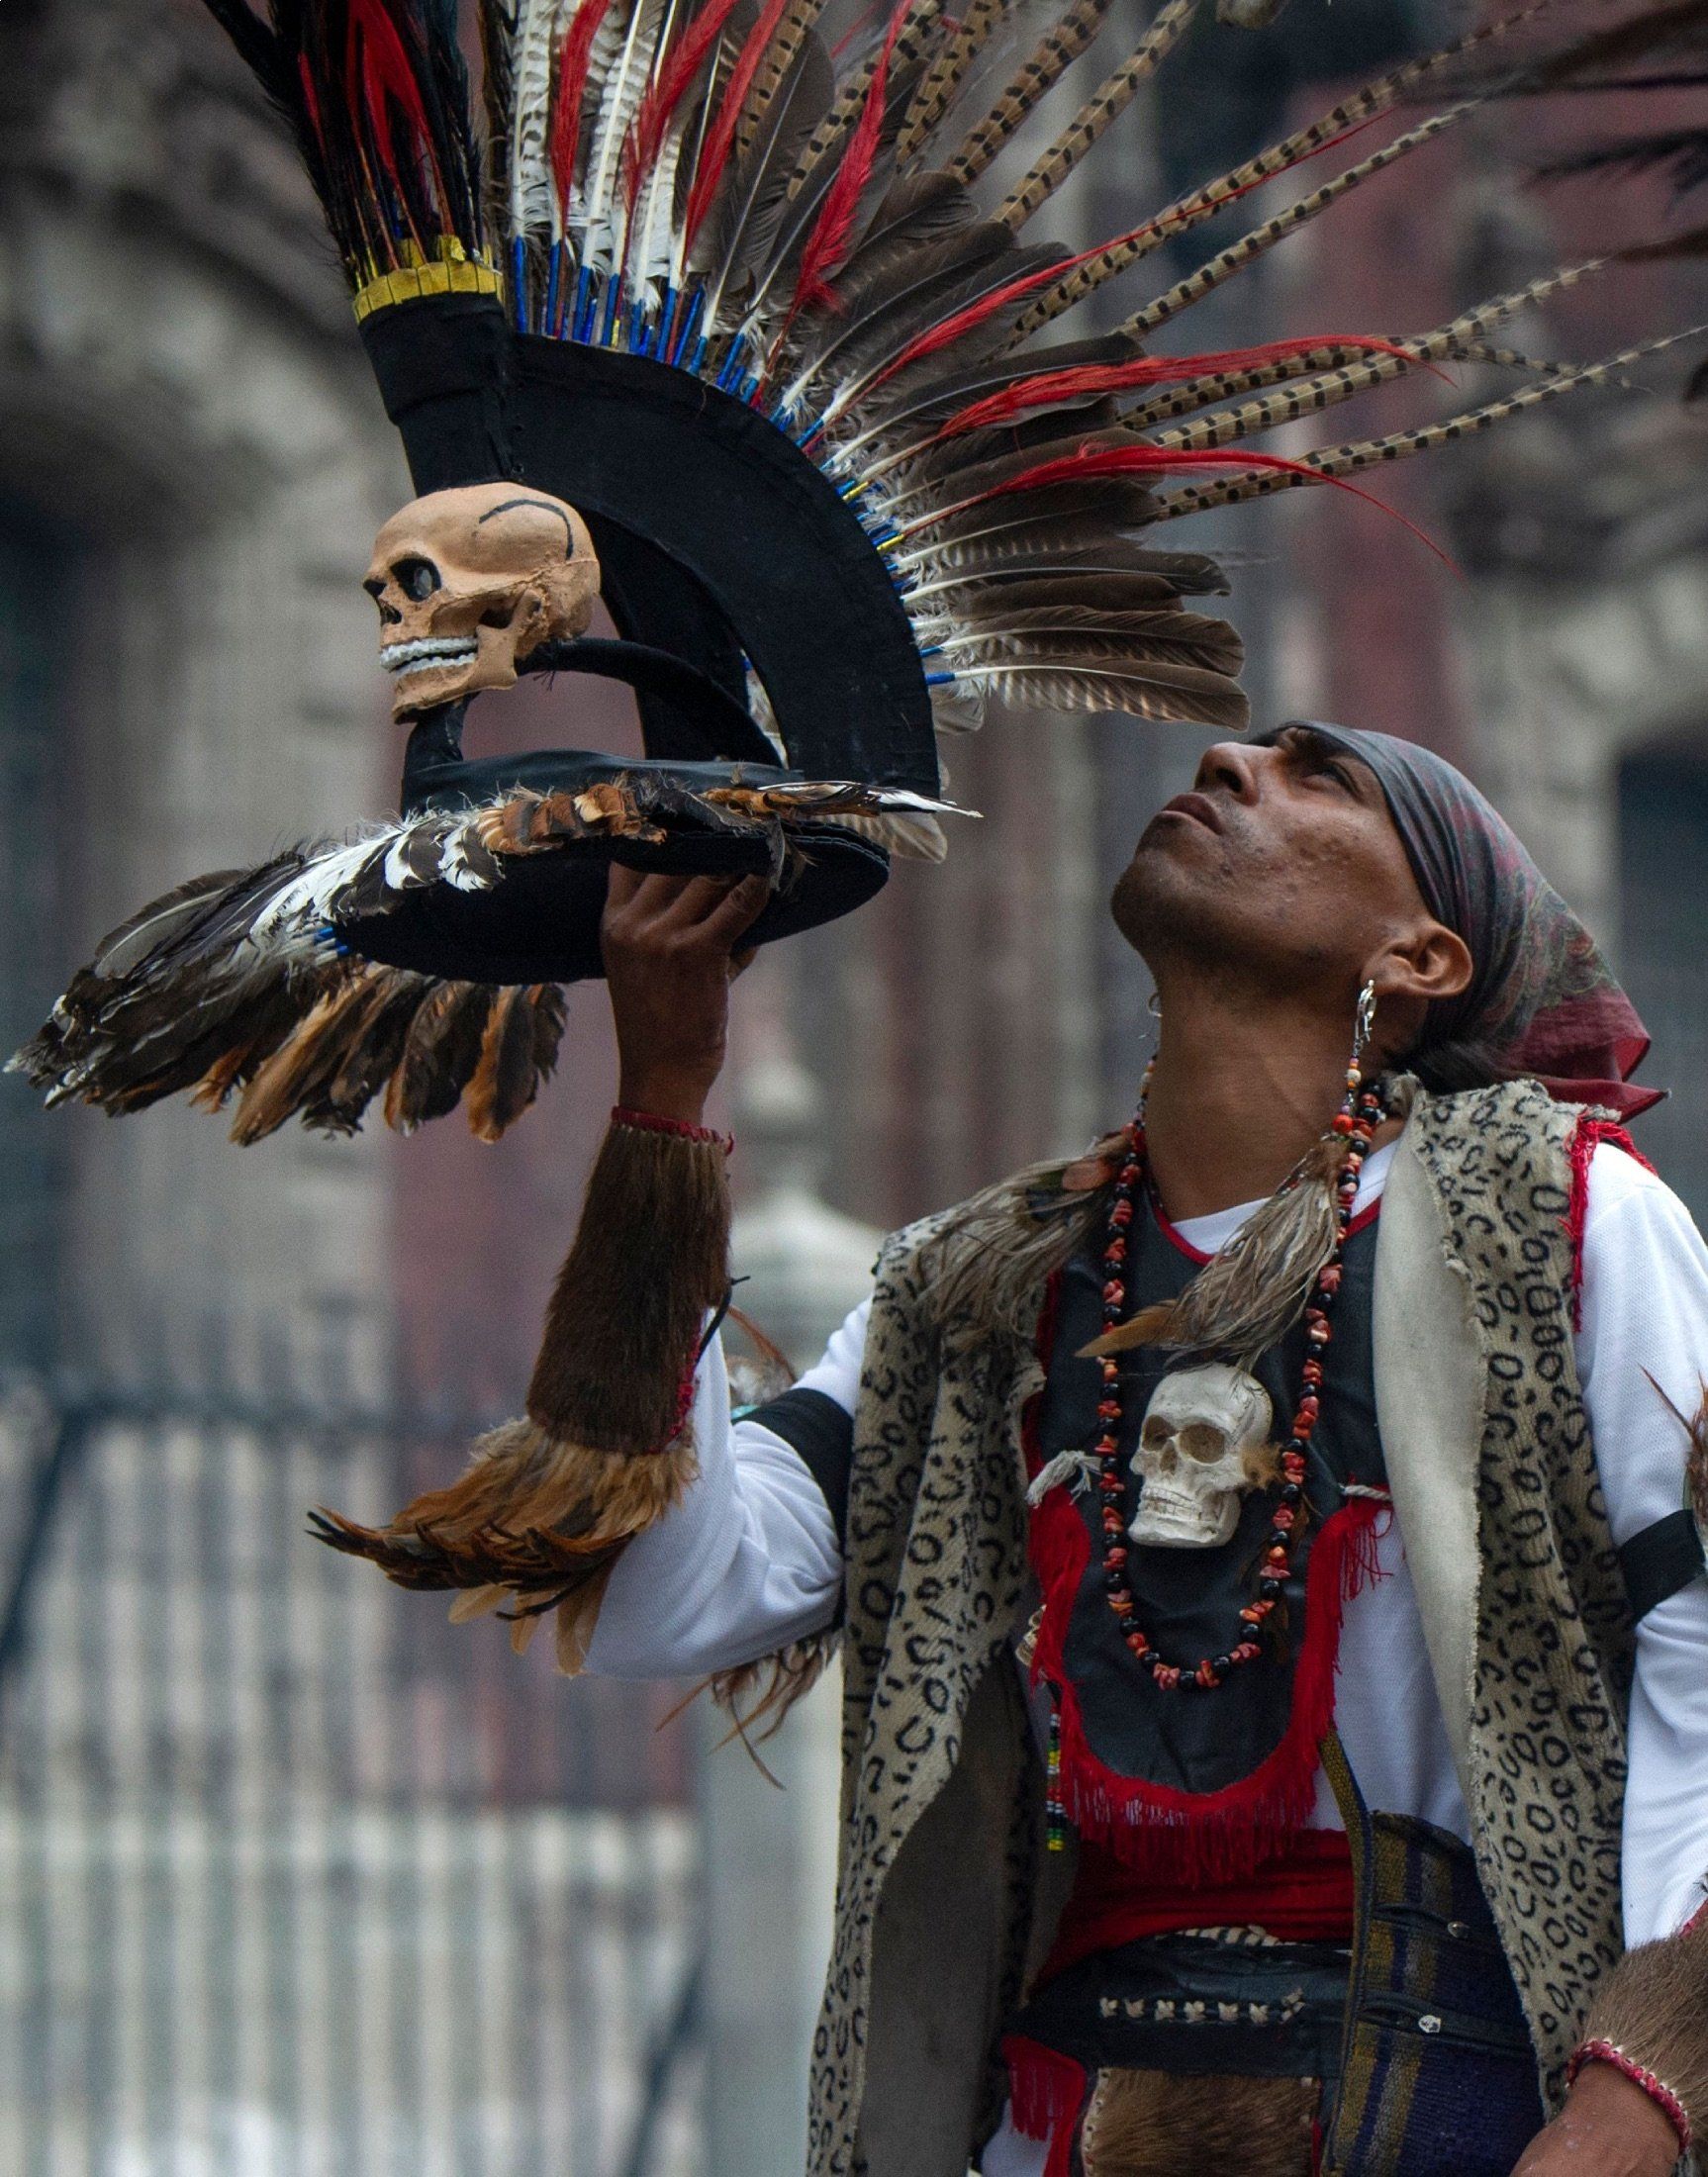 A man performs a ritual before an Aztec dance at the Zocalo square in Mexico City, Mexico, July 31, 2021. (AFP Photo)